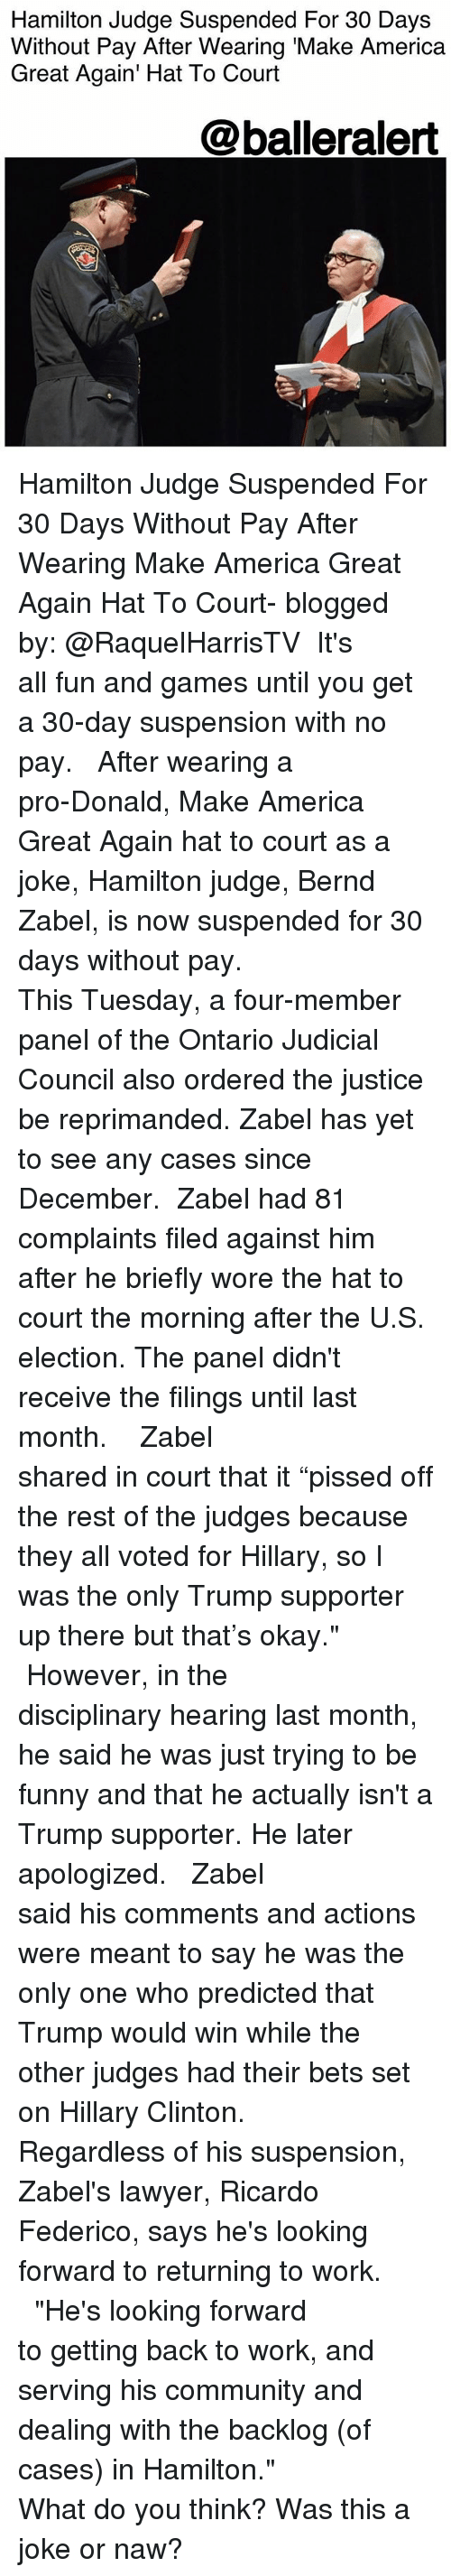 "Lawyered: Hamilton Judge Suspended For 30 Days  Without Pay After Wearing 'Make America  Great Again' Hat To Court  @balleralert Hamilton Judge Suspended For 30 Days Without Pay After Wearing Make America Great Again Hat To Court- blogged by: @RaquelHarrisTV ⠀⠀⠀⠀⠀⠀⠀ It's all fun and games until you get a 30-day suspension with no pay. ⠀⠀⠀⠀⠀⠀⠀ ⠀⠀⠀⠀⠀⠀⠀ After wearing a pro-Donald, Make America Great Again hat to court as a joke, Hamilton judge, Bernd Zabel, is now suspended for 30 days without pay. ⠀⠀⠀⠀⠀⠀⠀ ⠀⠀⠀⠀⠀⠀⠀ This Tuesday, a four-member panel of the Ontario Judicial Council also ordered the justice be reprimanded. Zabel has yet to see any cases since December. ⠀⠀⠀⠀⠀⠀⠀ Zabel had 81 complaints filed against him after he briefly wore the hat to court the morning after the U.S. election. The panel didn't receive the filings until last month. ⠀⠀⠀⠀⠀⠀⠀ ⠀⠀⠀⠀⠀⠀⠀ ⠀⠀⠀⠀⠀⠀⠀ Zabel shared in court that it ""pissed off the rest of the judges because they all voted for Hillary, so I was the only Trump supporter up there but that's okay."" ⠀⠀⠀⠀⠀⠀⠀ ⠀⠀⠀⠀⠀⠀⠀ However, in the disciplinary hearing last month, he said he was just trying to be funny and that he actually isn't a Trump supporter. He later apologized. ⠀⠀⠀⠀⠀⠀⠀ ⠀⠀⠀⠀⠀⠀⠀ Zabel said his comments and actions were meant to say he was the only one who predicted that Trump would win while the other judges had their bets set on Hillary Clinton. ⠀⠀⠀⠀⠀⠀⠀ Regardless of his suspension, Zabel's lawyer, Ricardo Federico, says he's looking forward to returning to work. ⠀⠀⠀⠀⠀⠀⠀ ⠀⠀⠀⠀⠀⠀⠀ ""He's looking forward to getting back to work, and serving his community and dealing with the backlog (of cases) in Hamilton."" ⠀⠀⠀⠀⠀⠀⠀ ⠀⠀⠀⠀⠀⠀⠀ What do you think? Was this a joke or naw?"